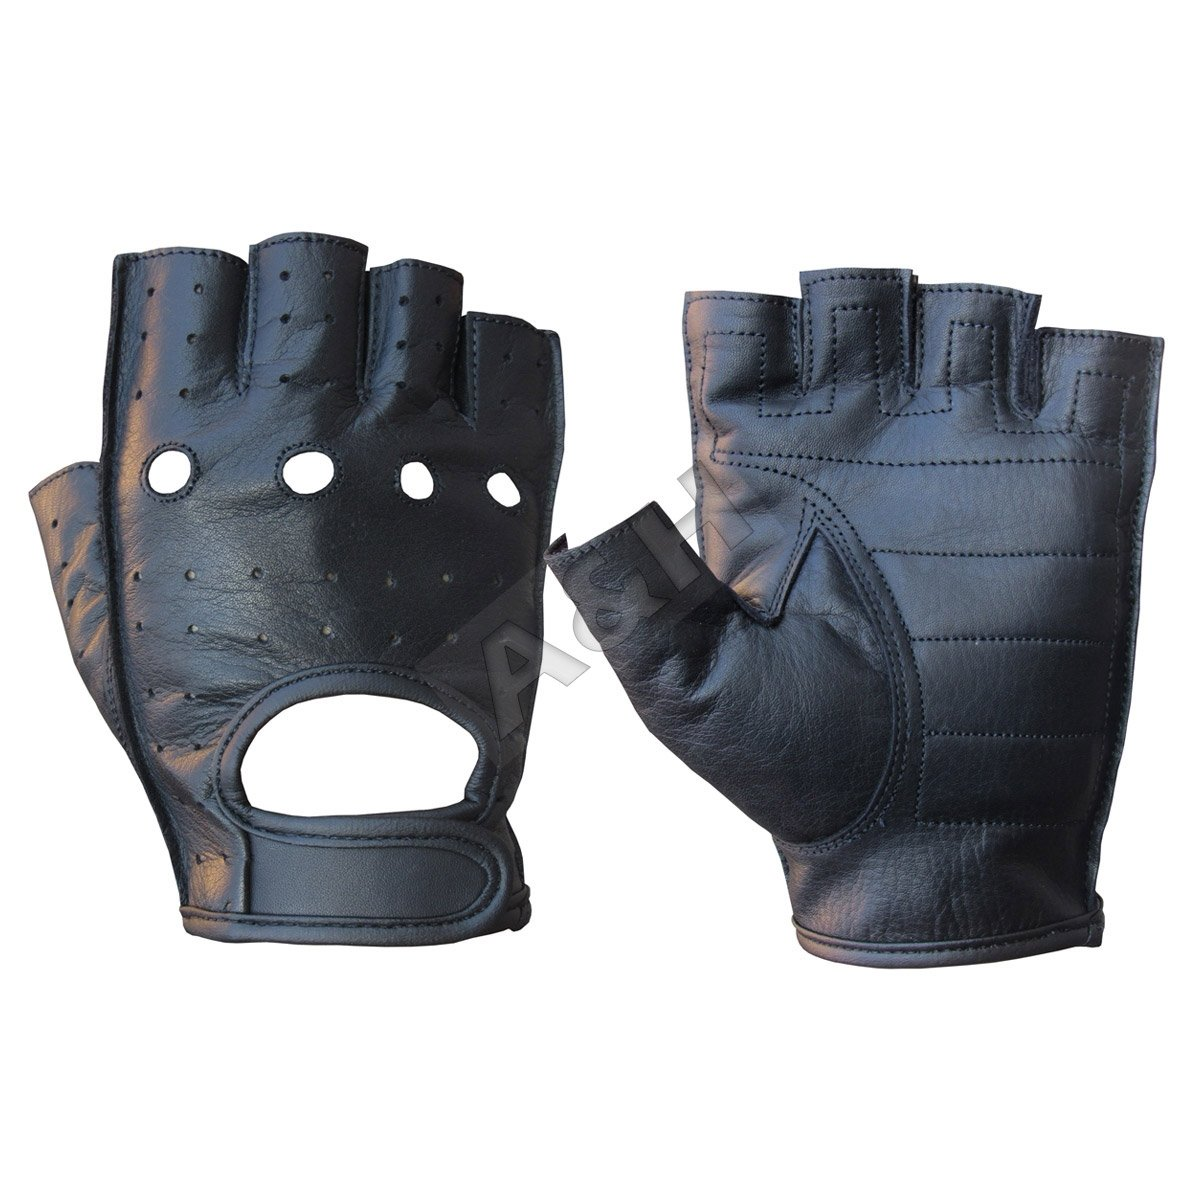 A&H Apparel Leather Motorcycle Glove Genuine Cowhide Fingerless Leather Driving Gloves (Large)